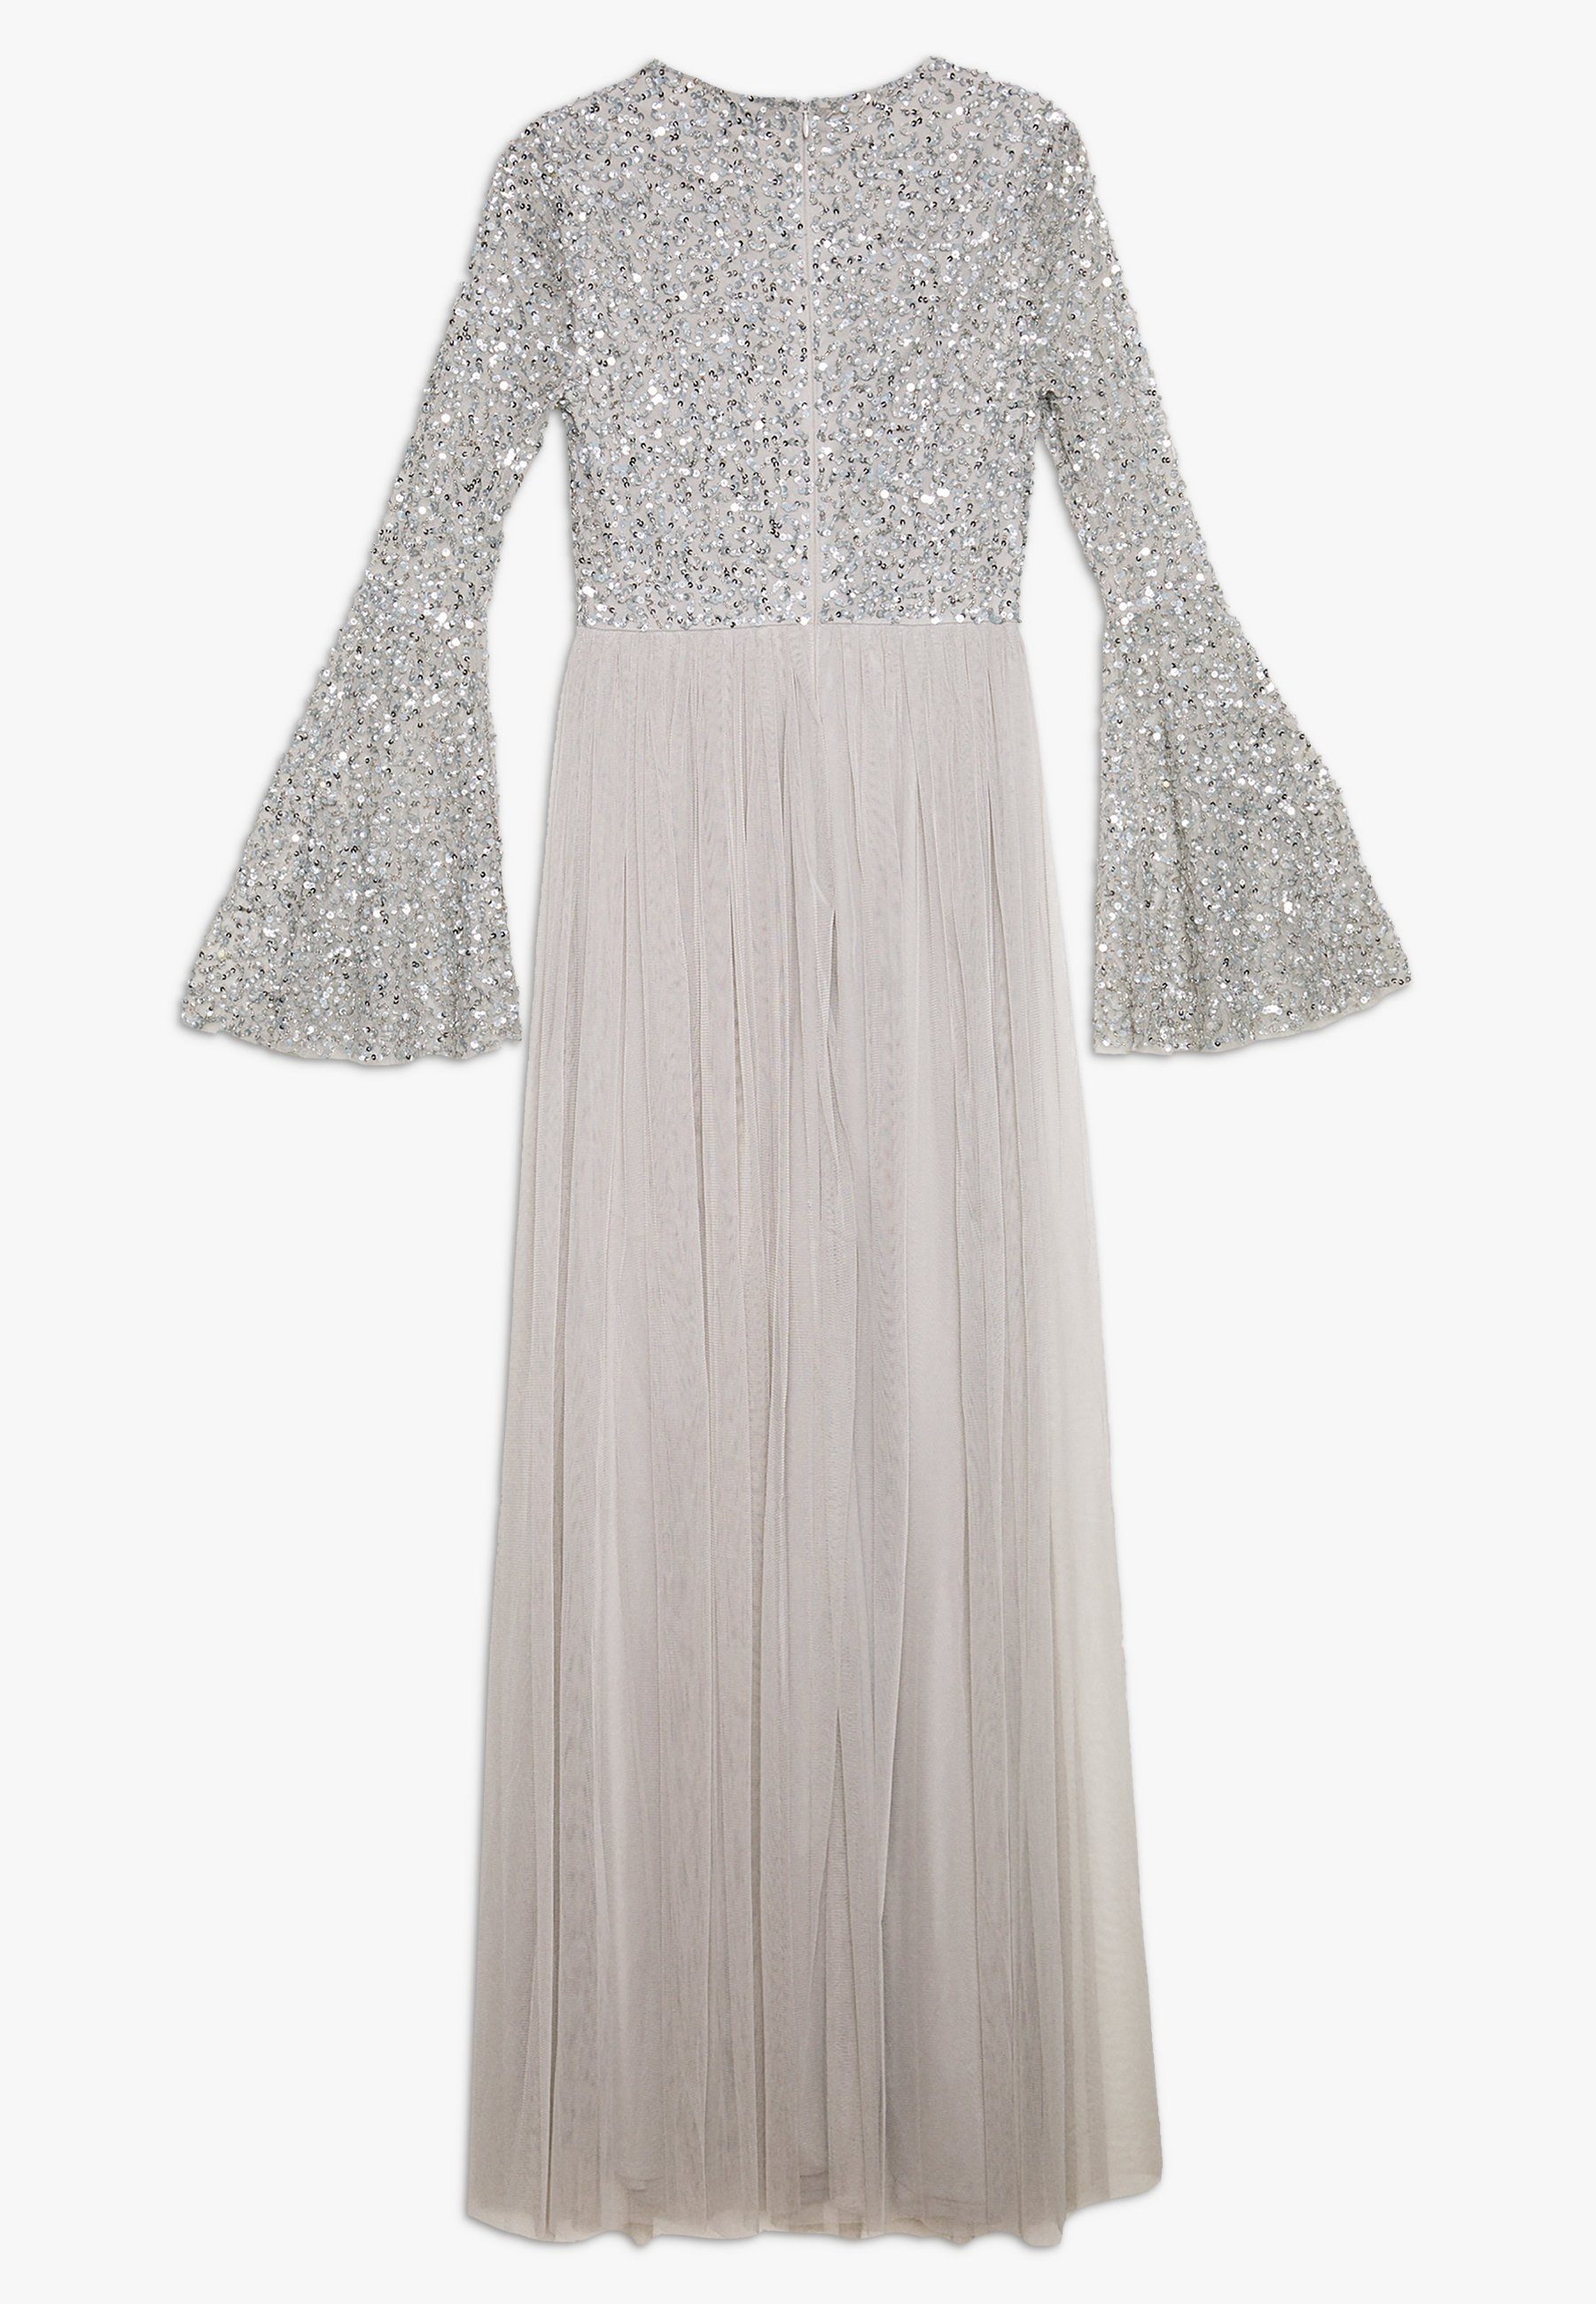 Maya Deluxe Round Neck Delicate Sequin Bell Sleeve Maxi Dress With Ski - Festklänning Soft Grey 3lwglAL